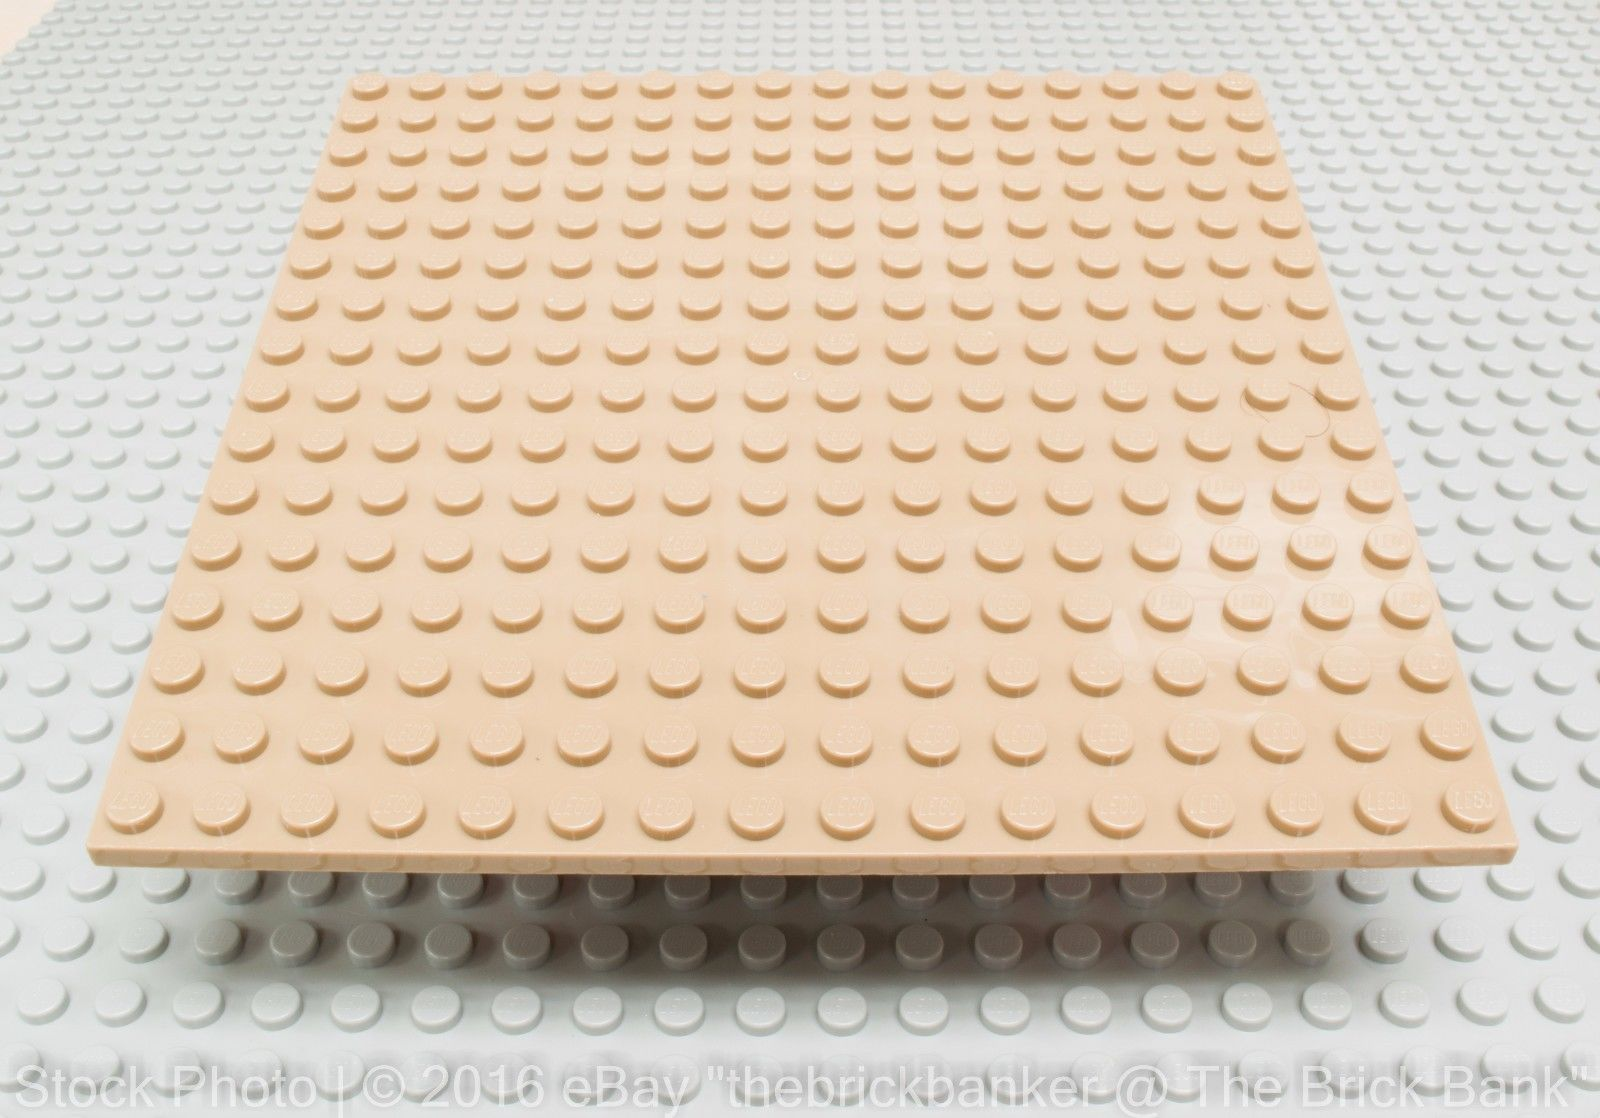 Lego 25 New Dark Tan Plates 6 x 8 Dot Building Blocks Pieces